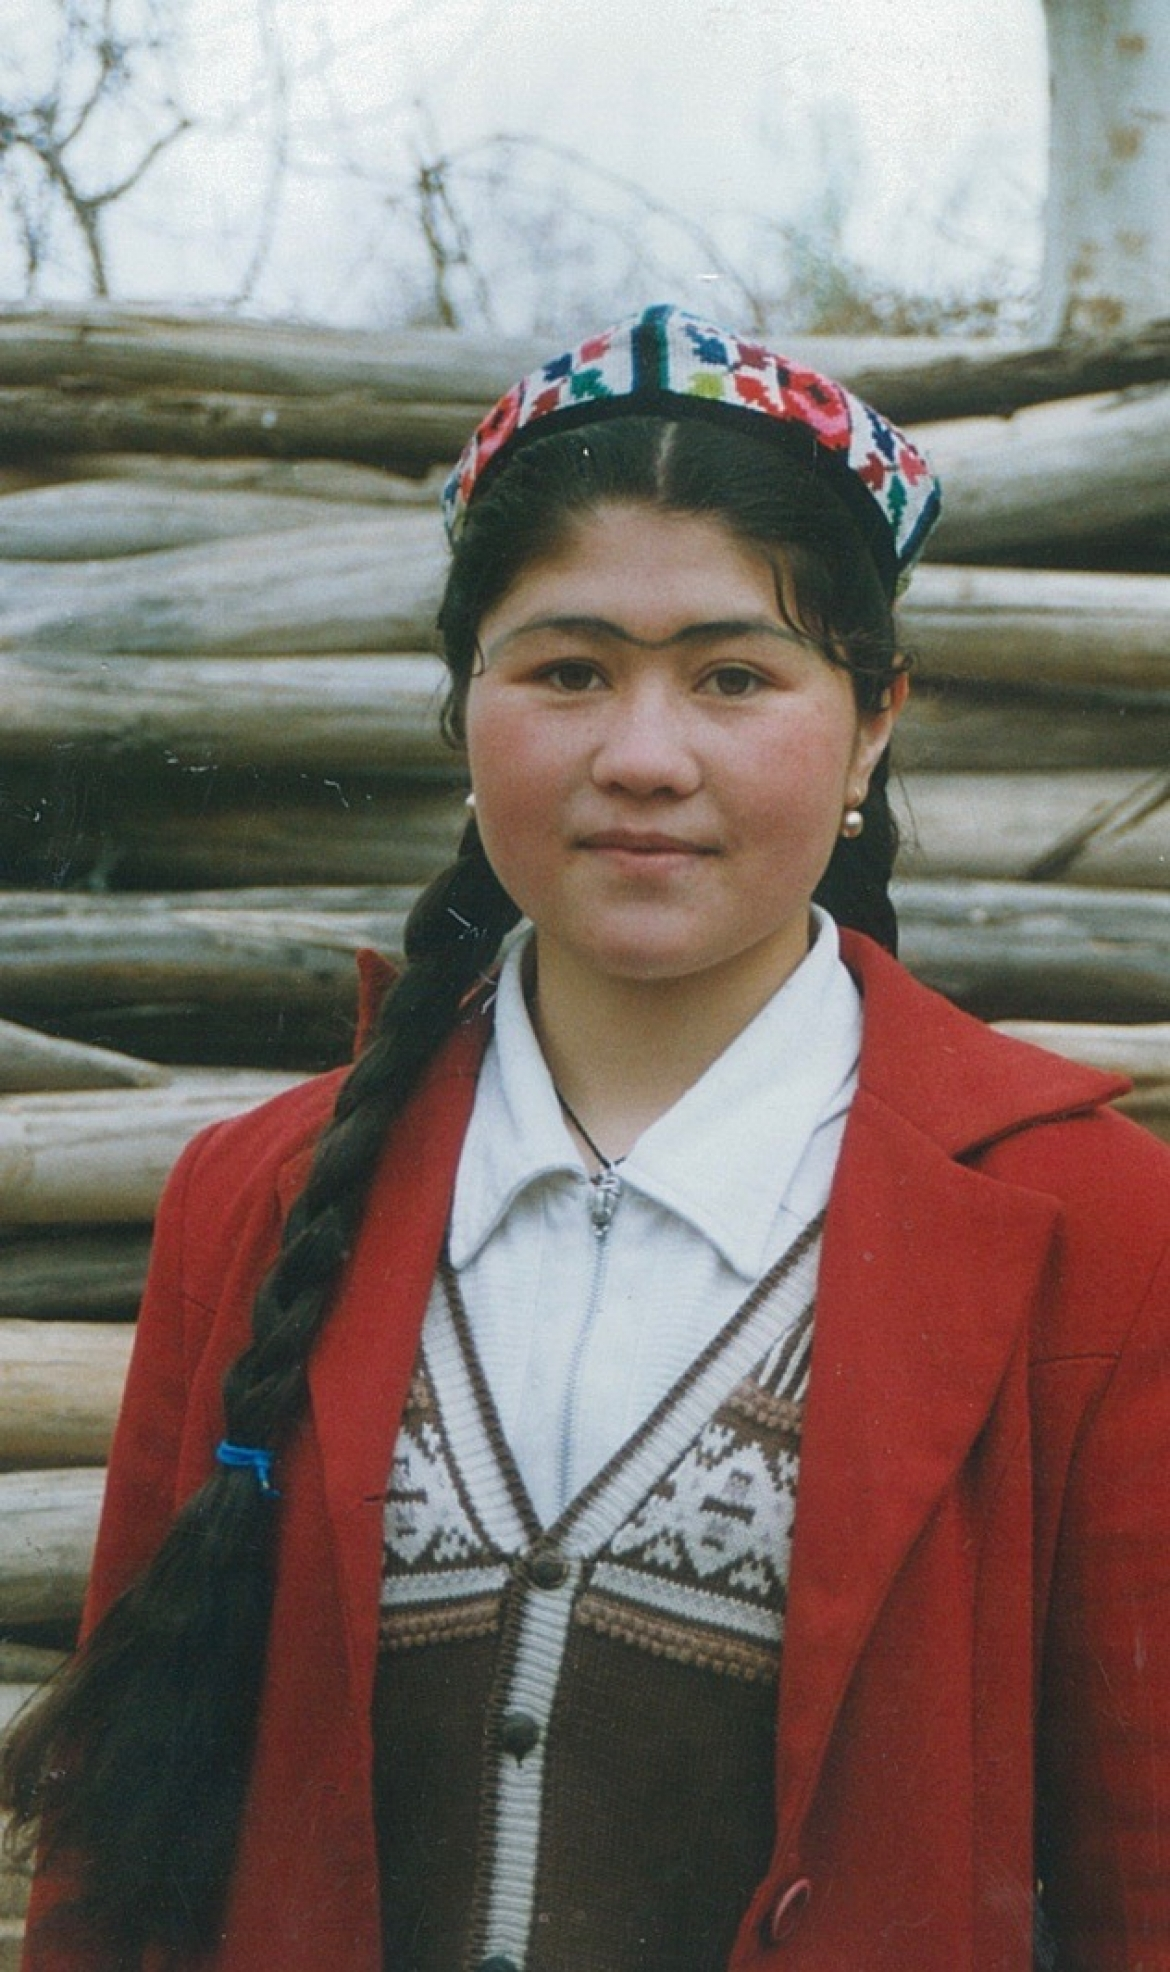 Uyghur girl wearing a dopa, Uyghur traditional hat, and eyebrows painted with osma, a herb said to help shape and thicken the eyebrows. Kashgar, Xinjiang Uyghur Autonomous Region, China.​